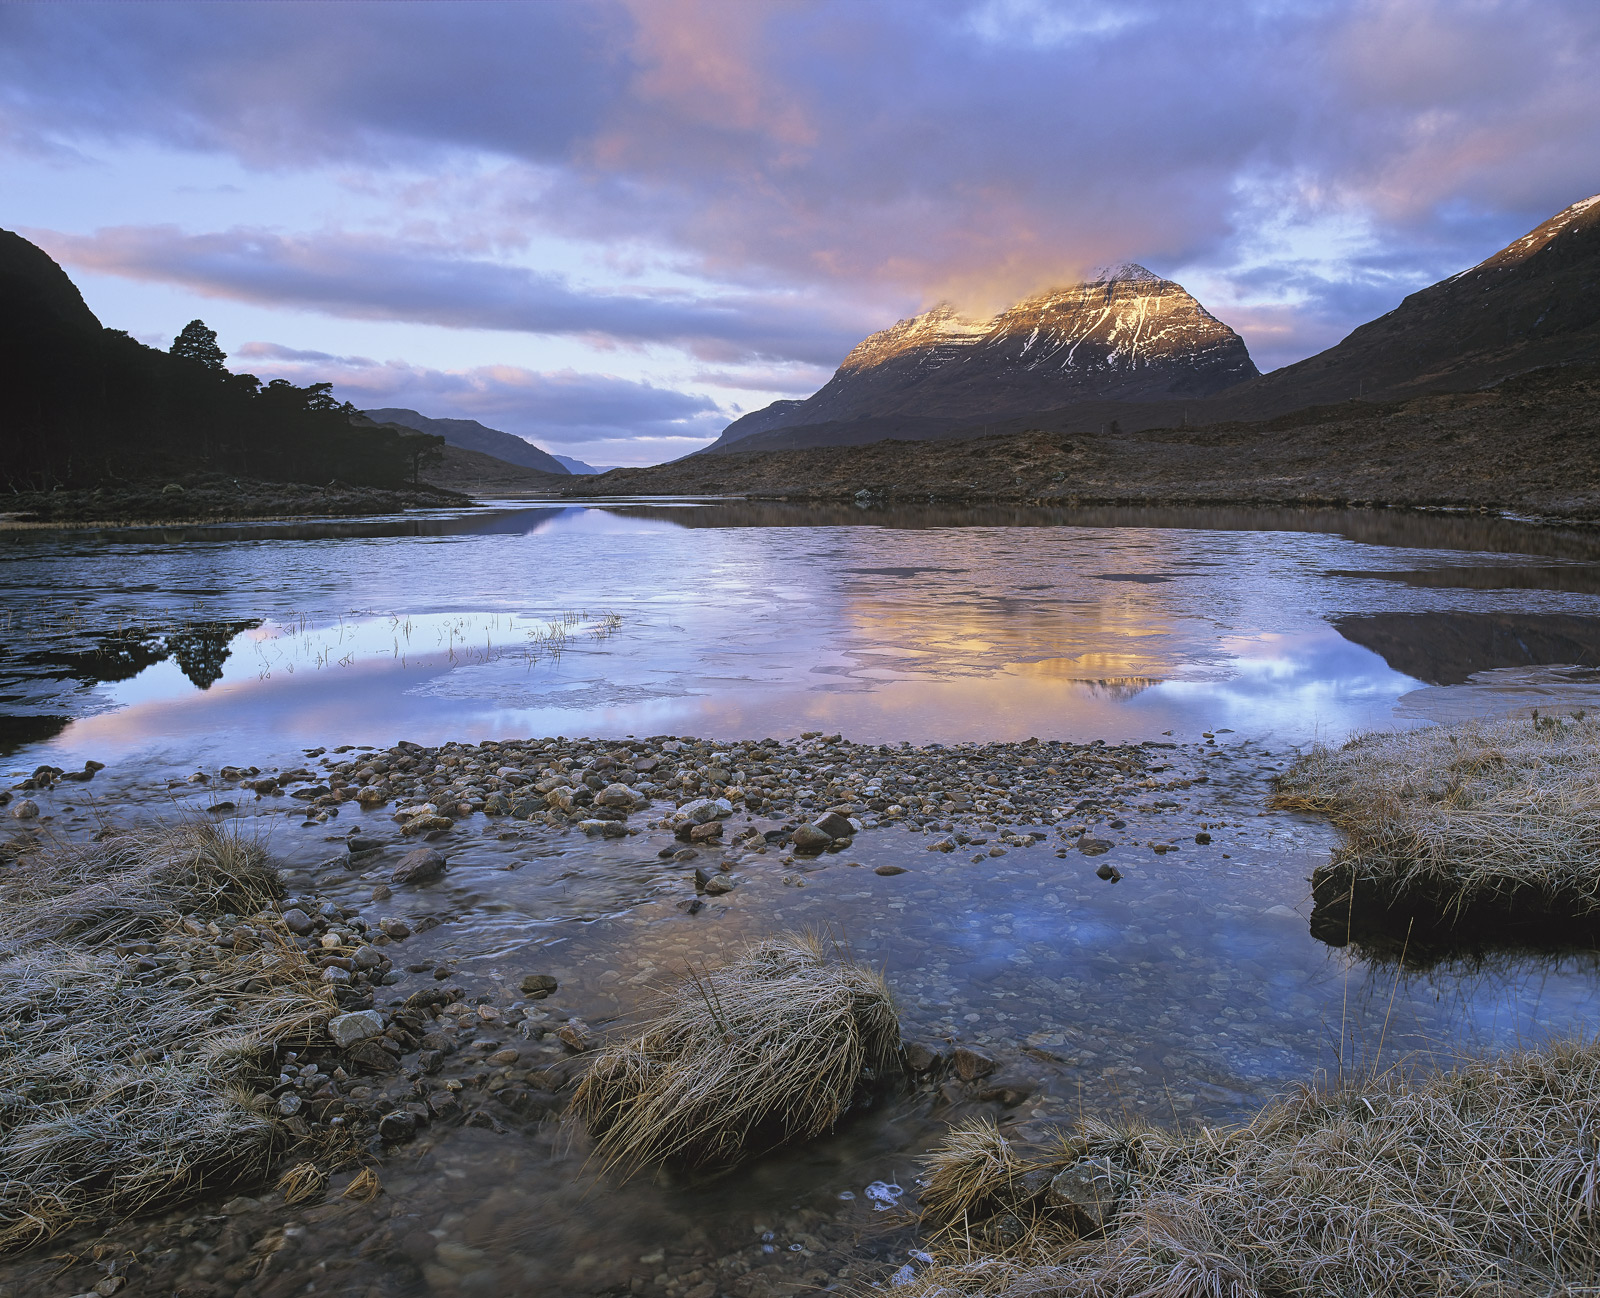 Winter mornings at the edge of Loch Clair can on occasions prove amazingly photogenic this proved to be one such dawn with a...